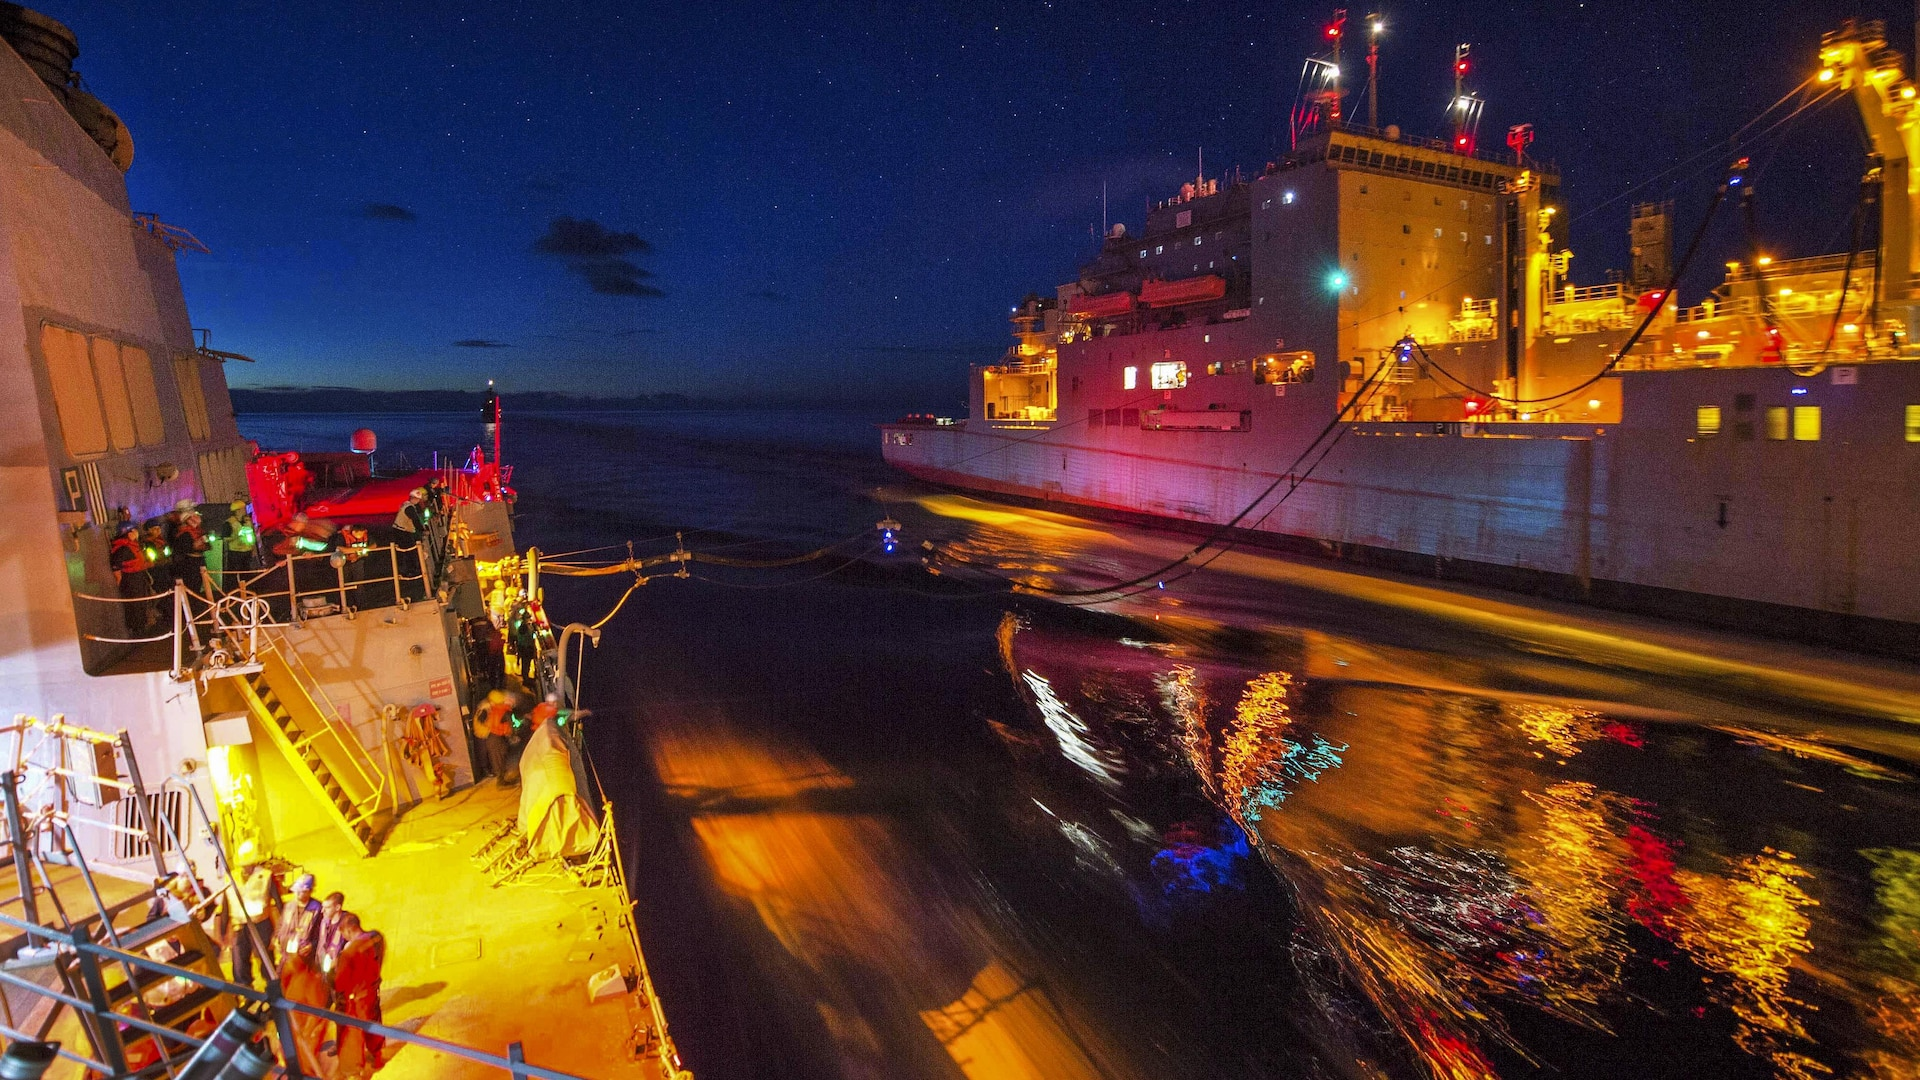 PACIFIC OCEAN (June 24, 2017) The Arleigh Burke-class guided-missile destroyer USS McCampbell (DDG 85) conducts a replenishment-at-sea with the dry cargo and ammunition ship USNS Richard E. Byrd (T-AKE 4). McCampbell is on patrol in the U.S. 7th Fleet area of operations in support of security and stability in the Indo-Asia-Pacific region. (U.S. Navy photo by Mass Communication Specialist 2nd Class Jeremy Graham/Released)